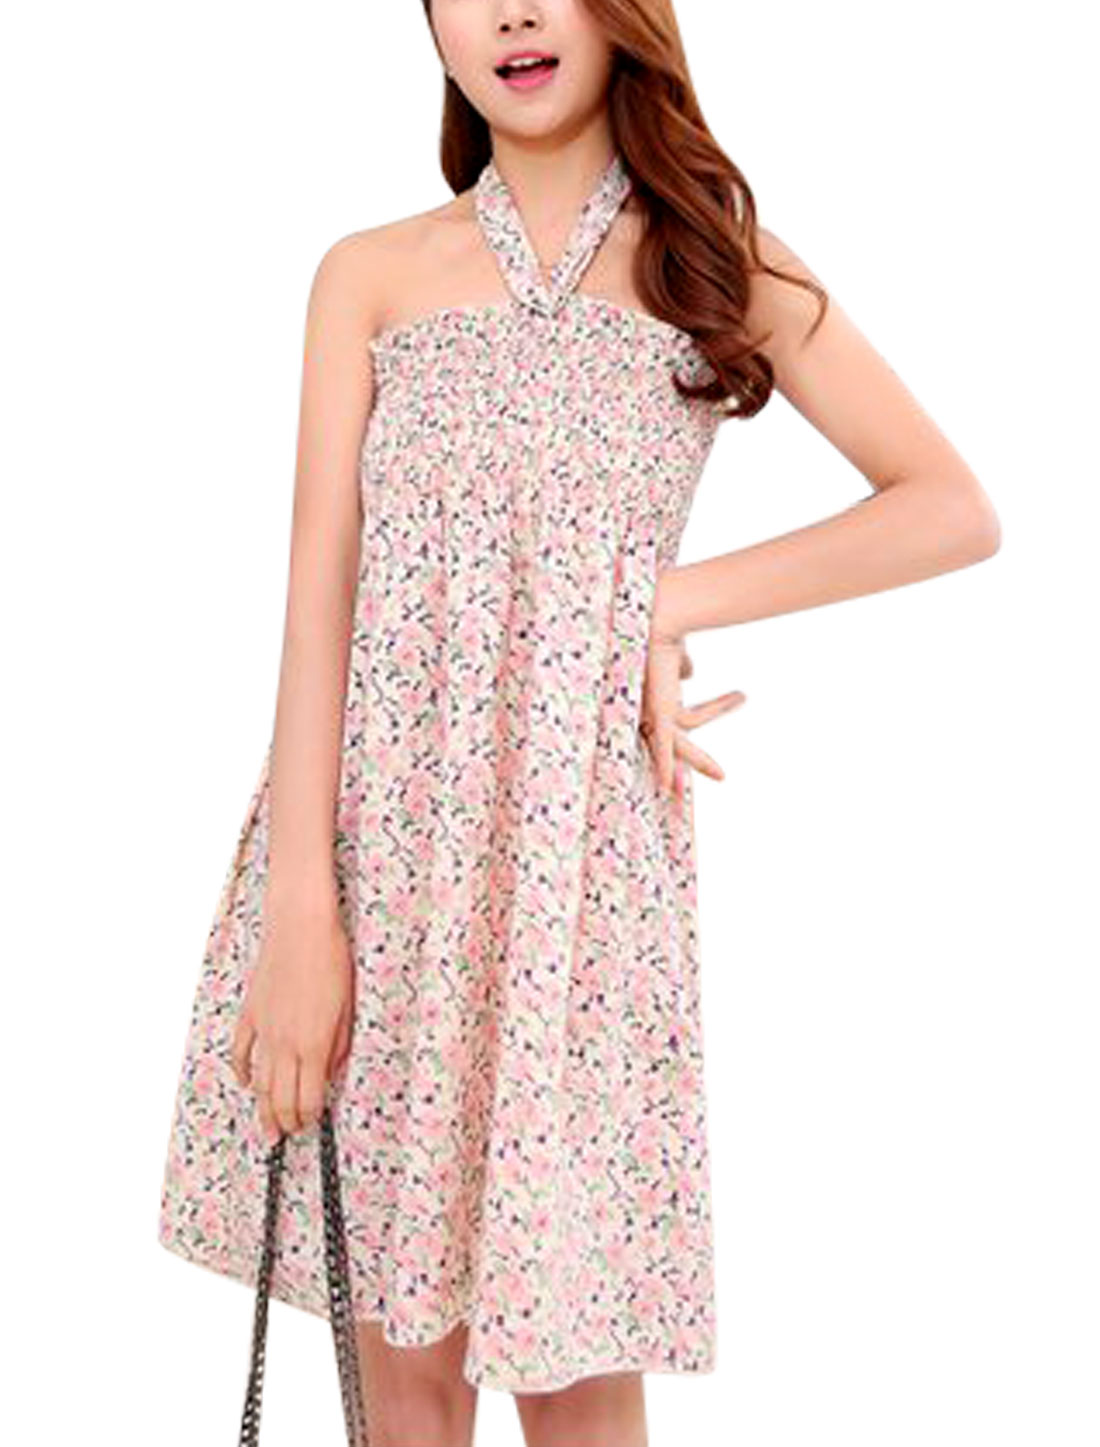 Lady Floral Prints Smocked Bust Unlined Sleeveless Sundress Beige S